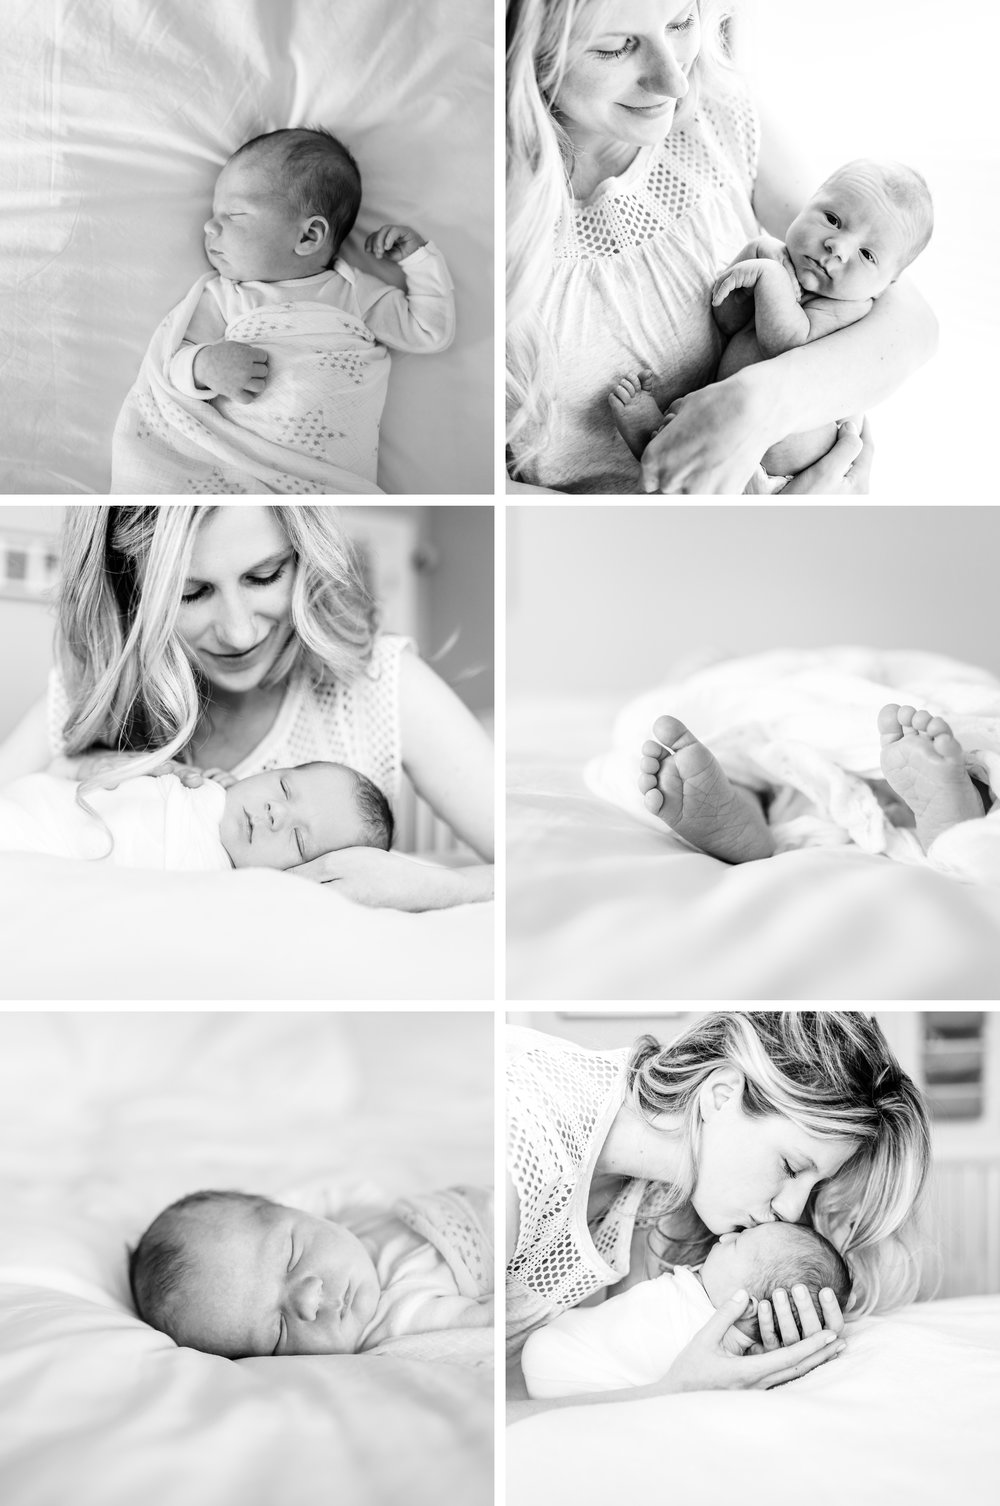 chicago-newborn-modern-lifestyle-photographer-jenny-grimm-photography_0006.jpg